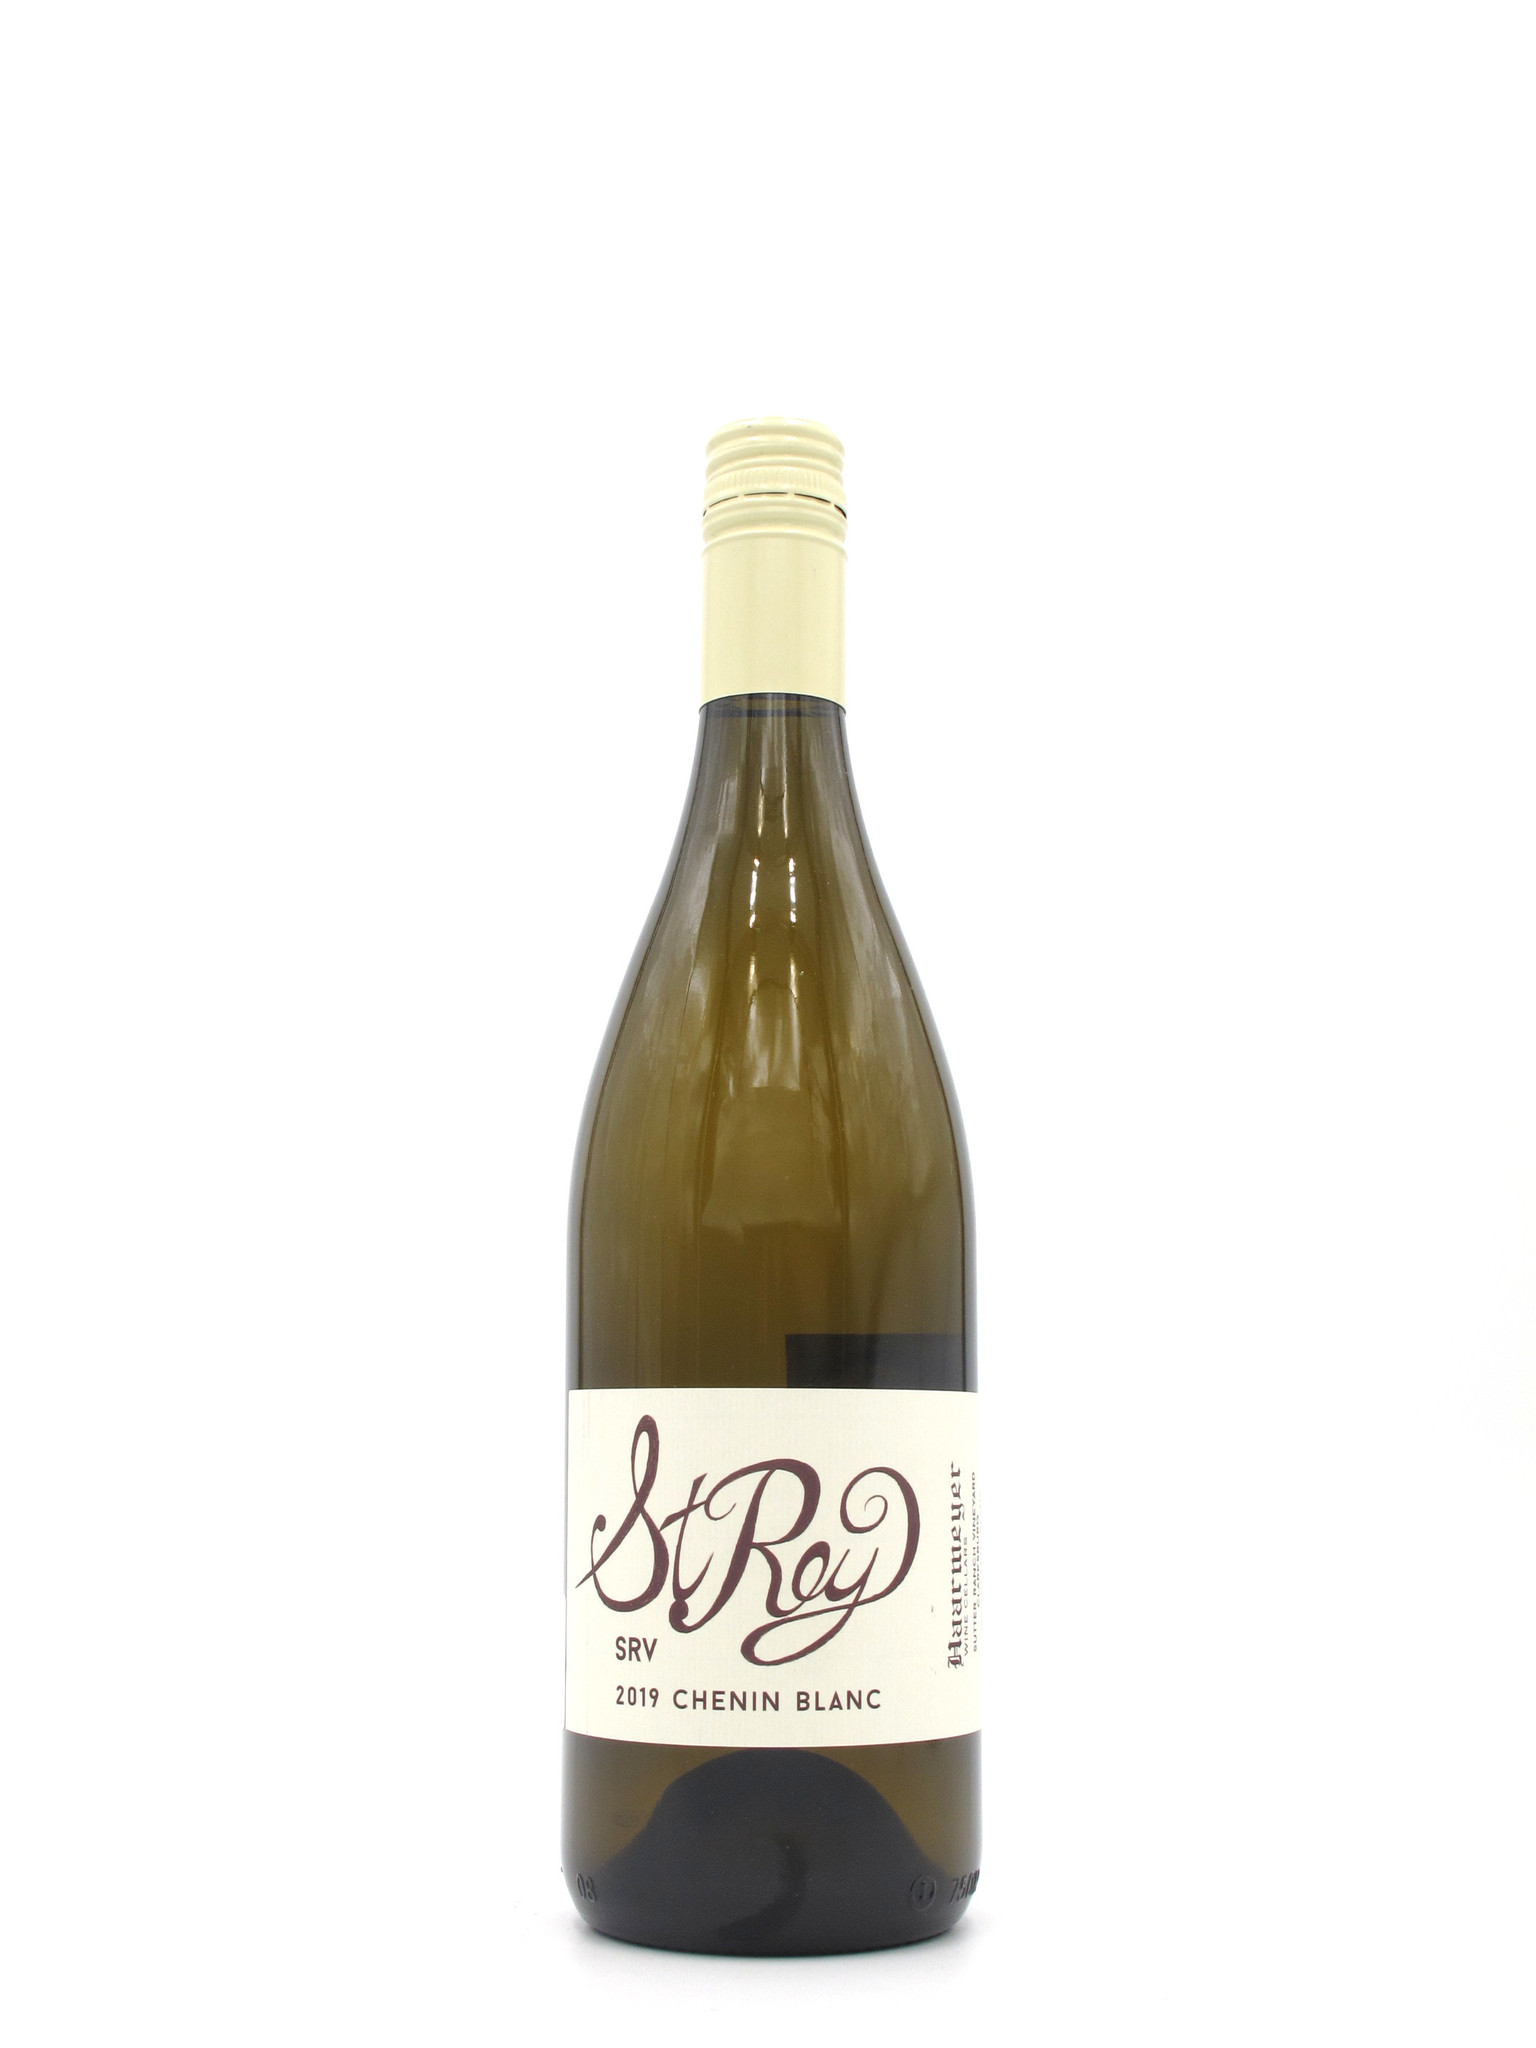 Haarmeyer Wine Cellars 2019 Haarmeyer 'SRV' St. Rey Vineyard Chenin Blanc Clarksburg 750ml